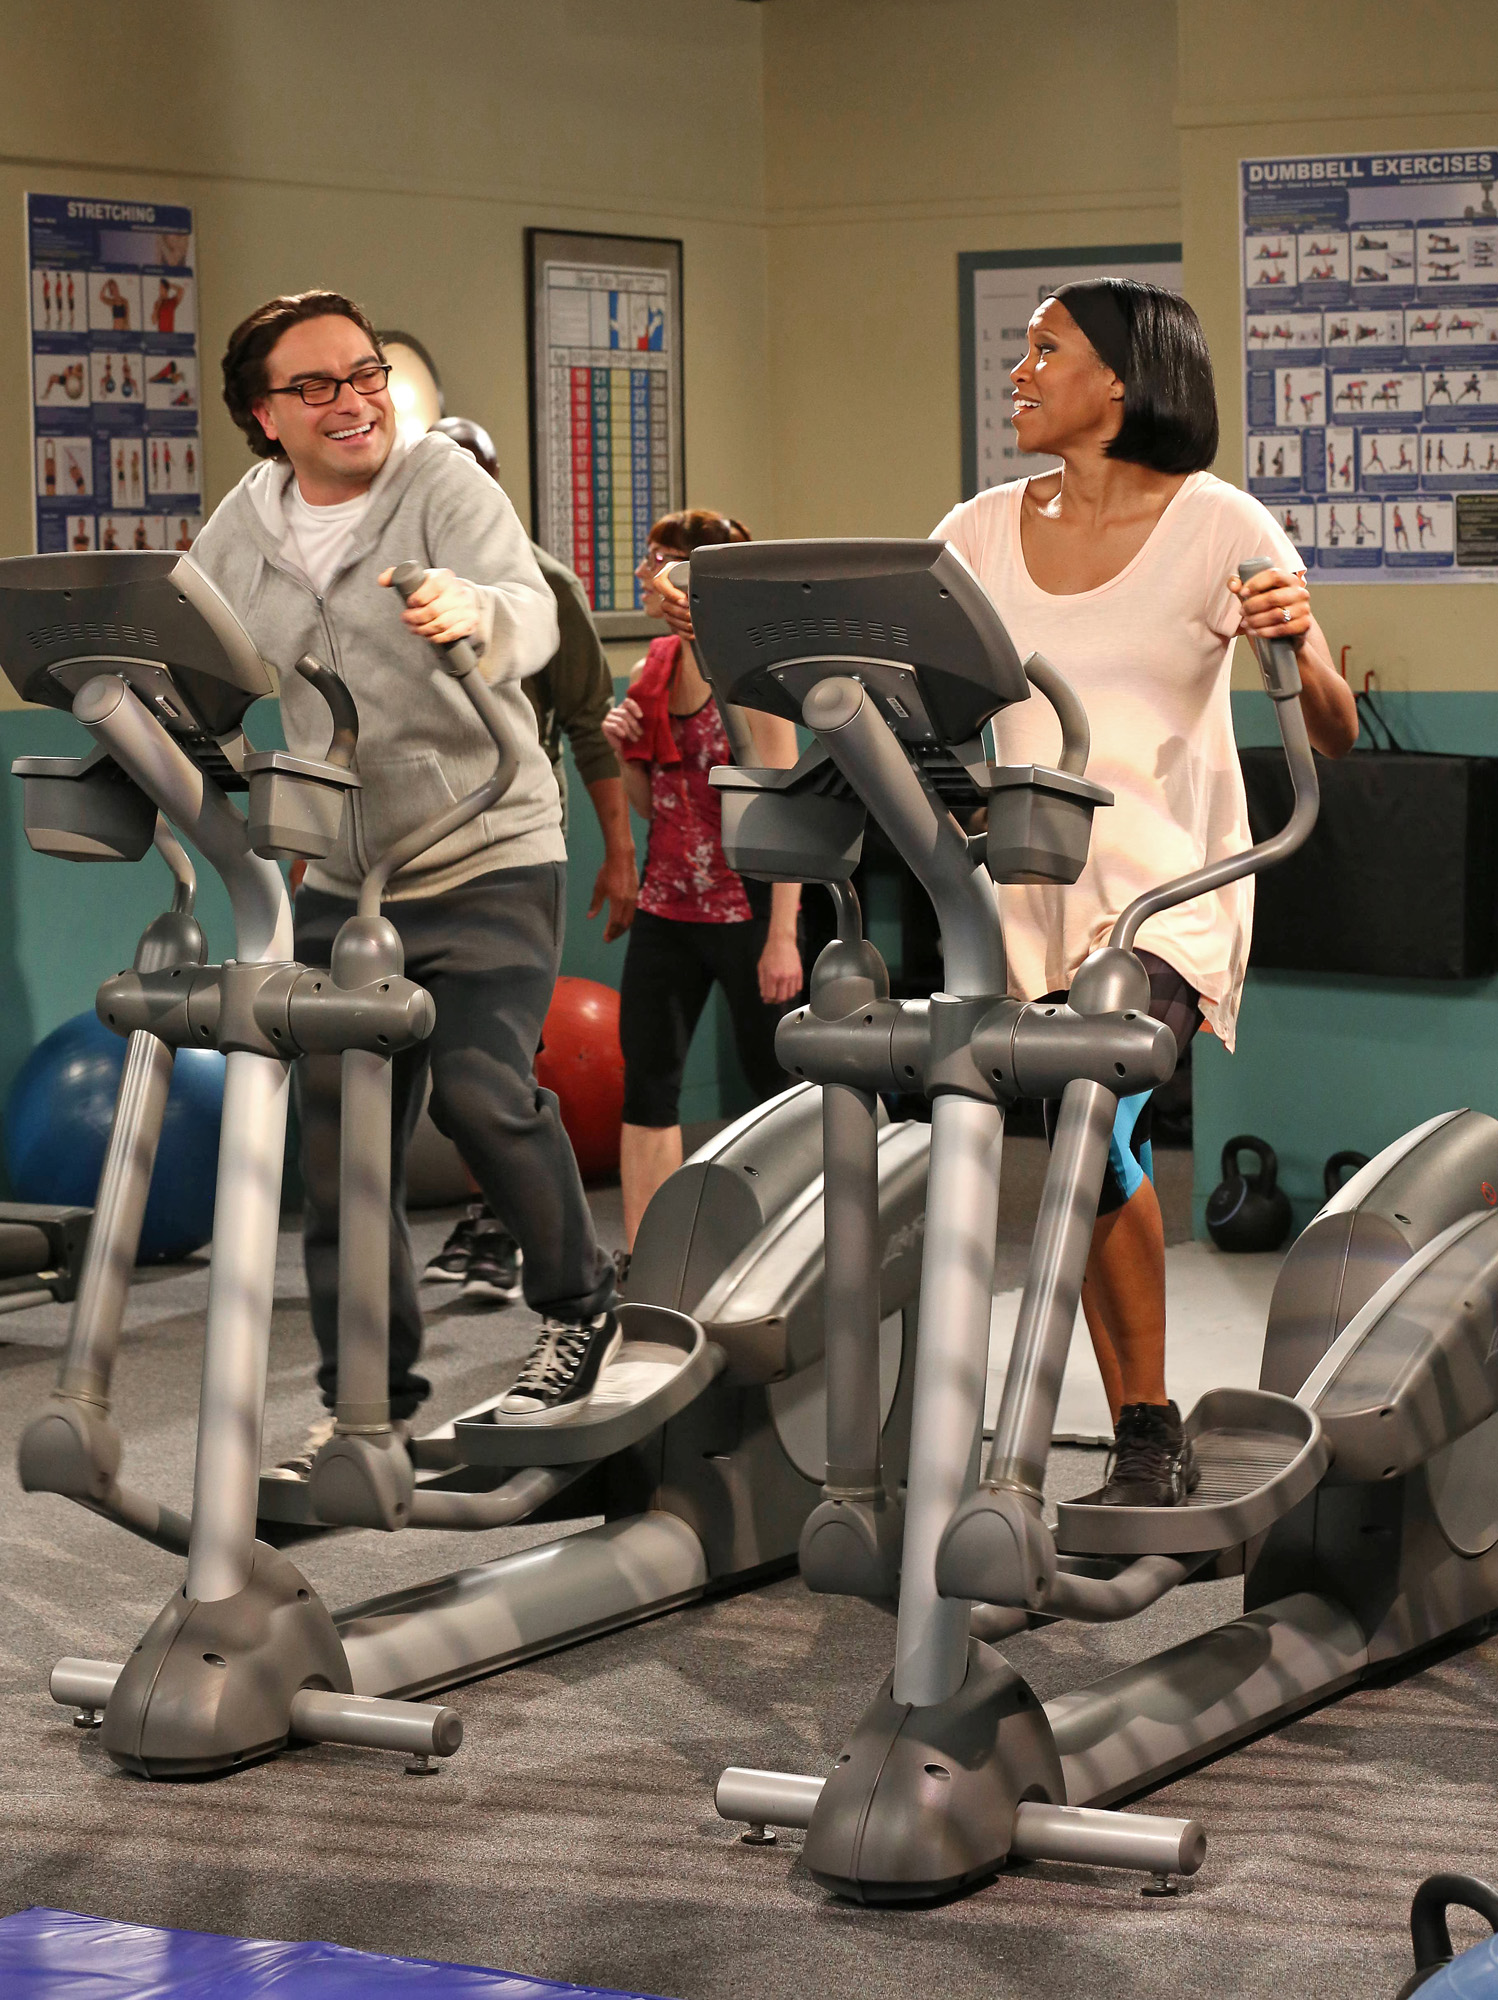 Elliptical exercise in